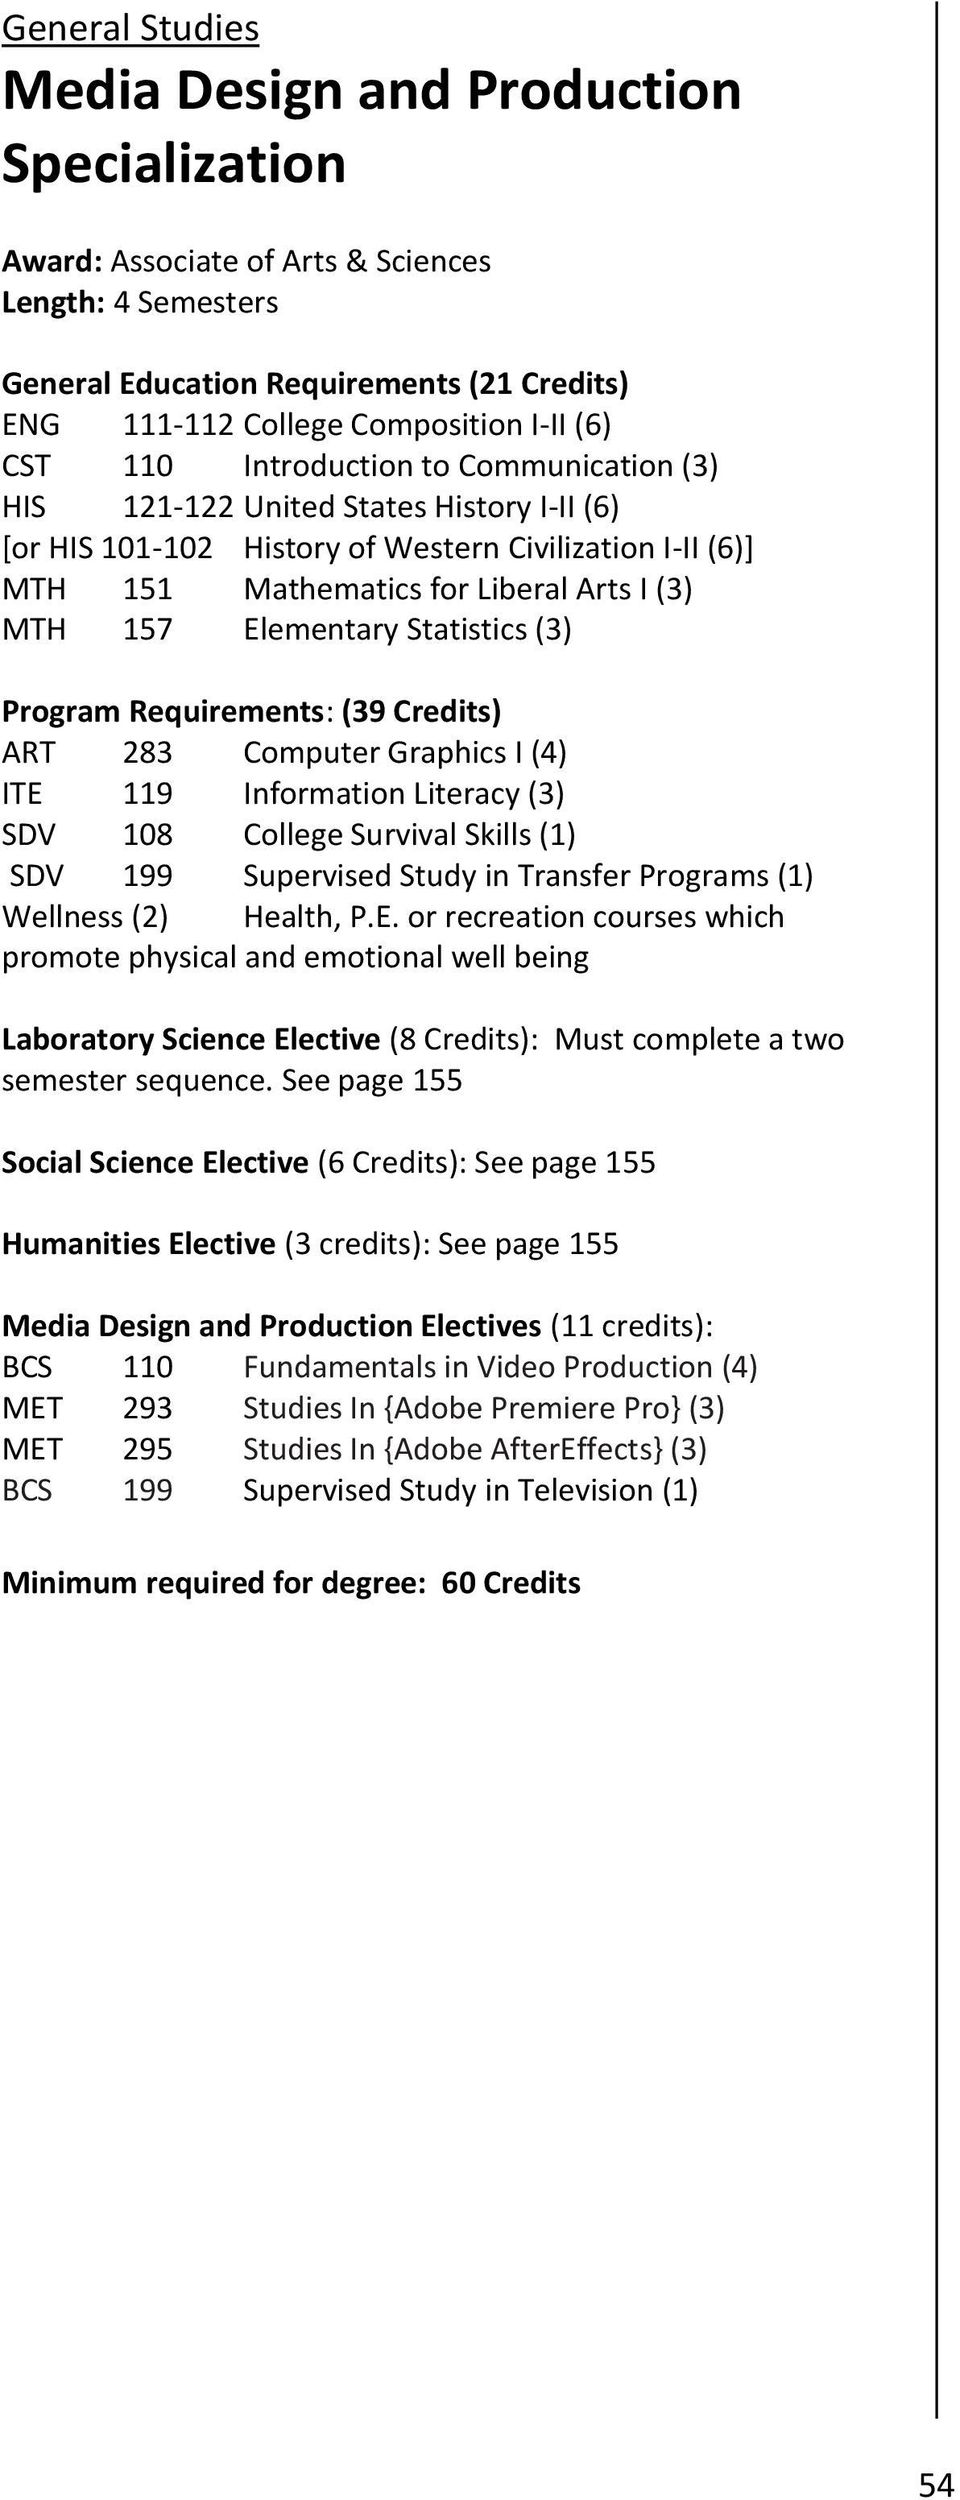 Elementary Statistics (3) Program Requirements: (39 Credits) ART 283 Computer Graphics I (4) ITE 119 Information Literacy (3) SDV 199 Supervised Study in Transfer Programs (1) Wellness (2) Health, P.